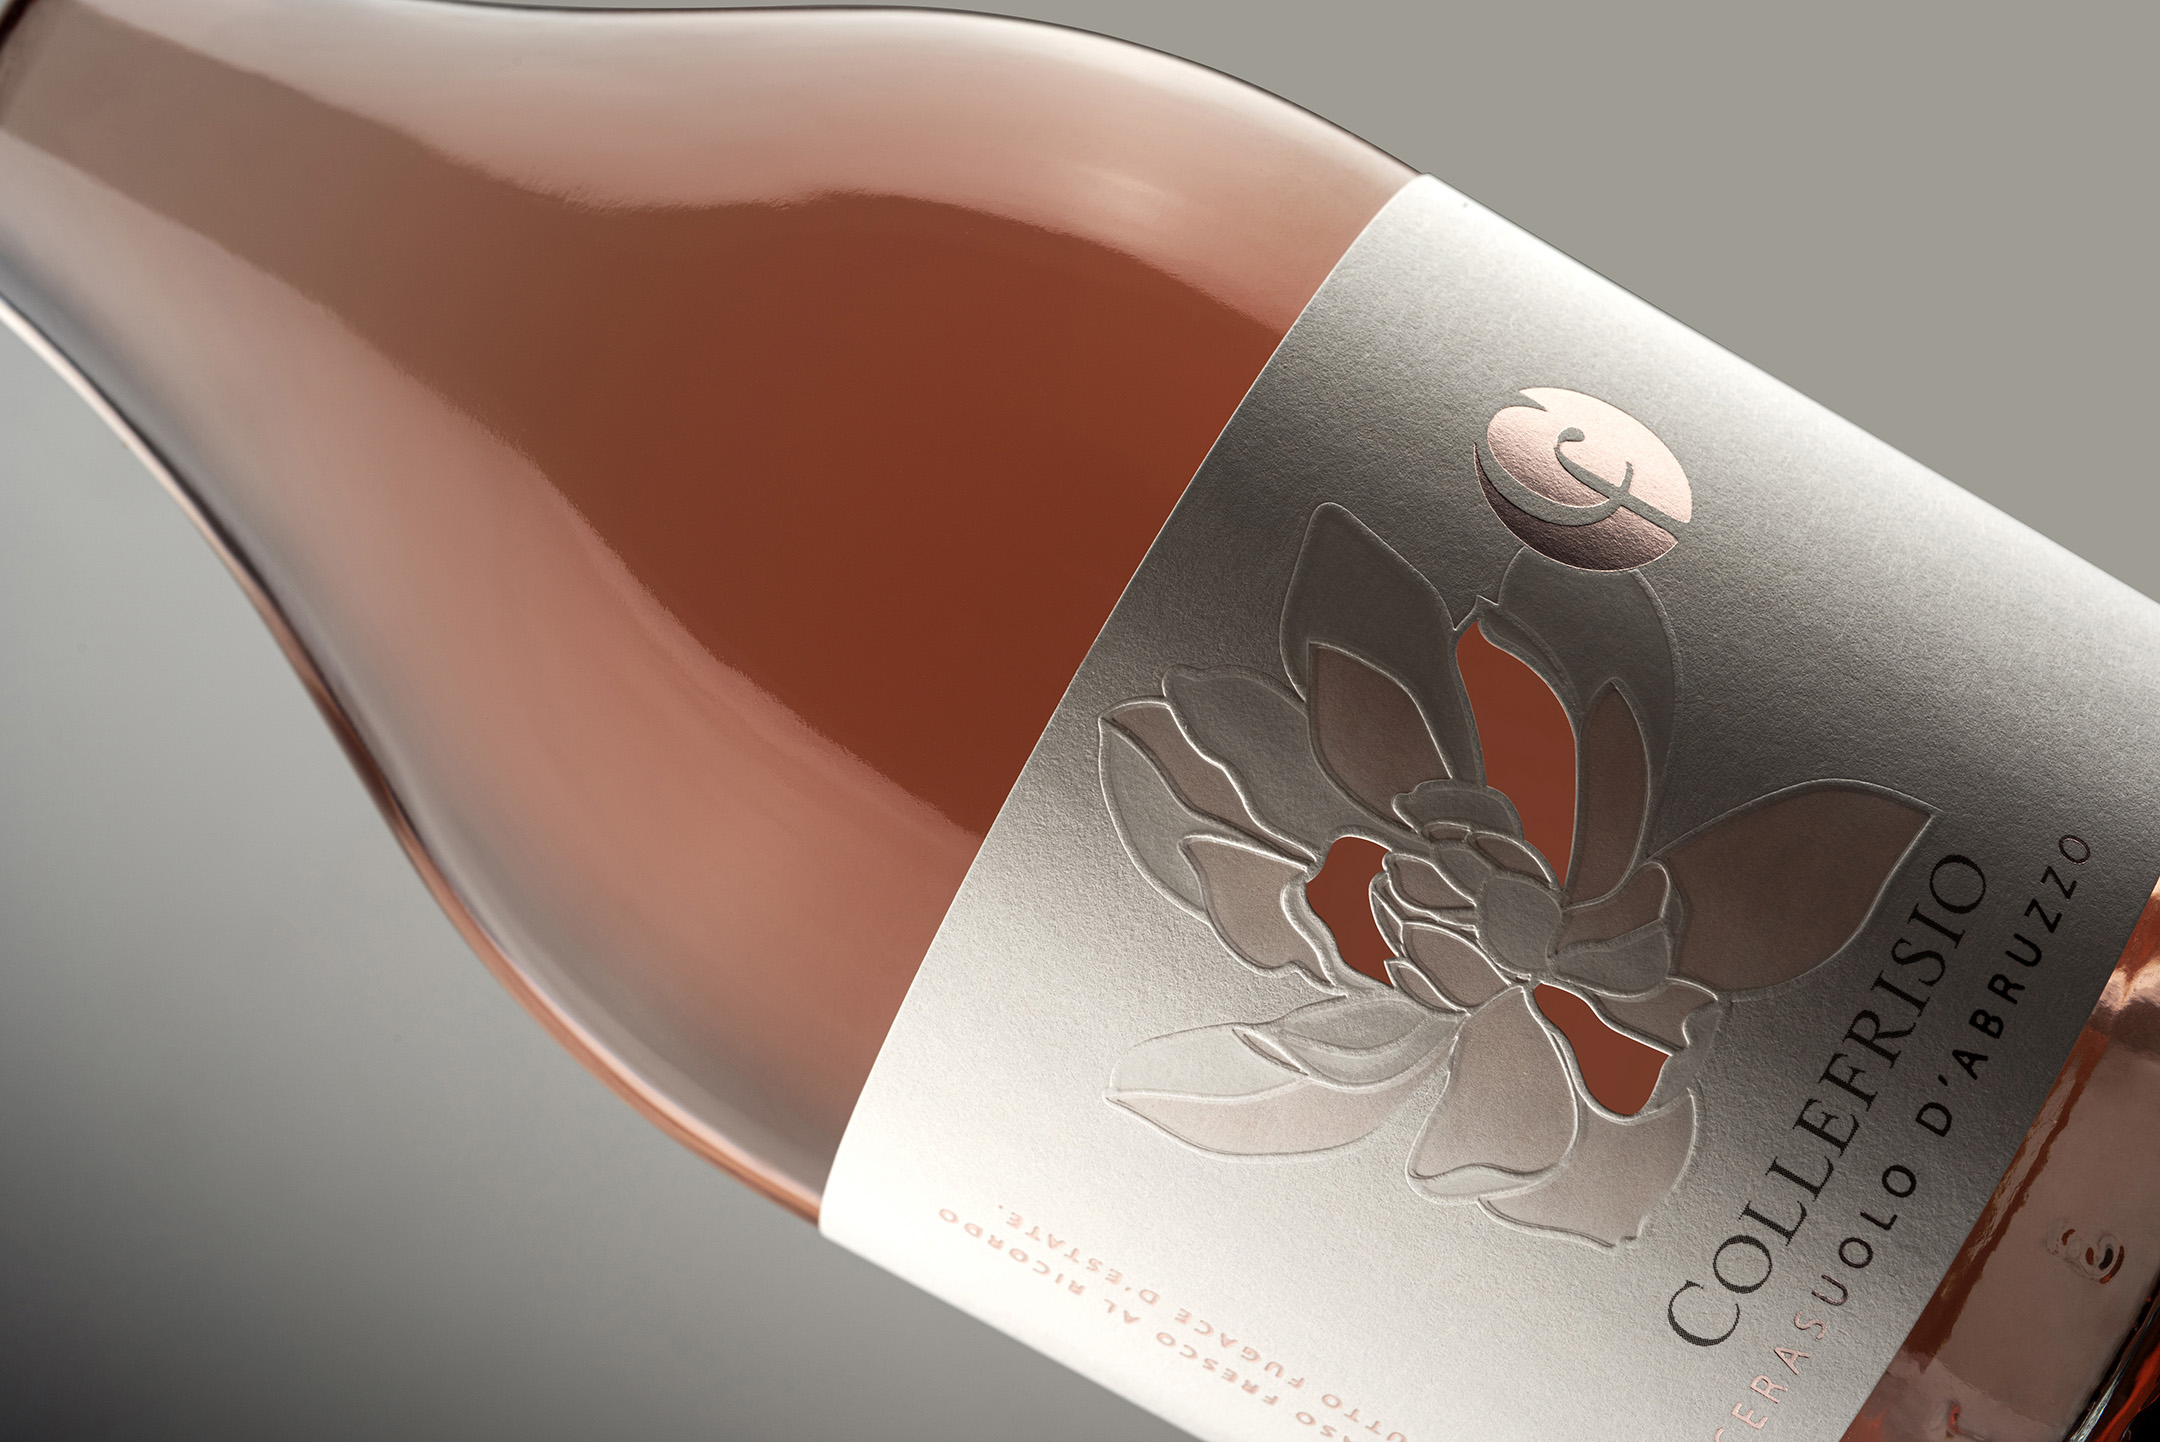 collefrisio-cerasuolo-abruzzo-2020-awards-packaging-spaziodipaolo-label-wine-italy-rose-winedesign-vinitaly-2